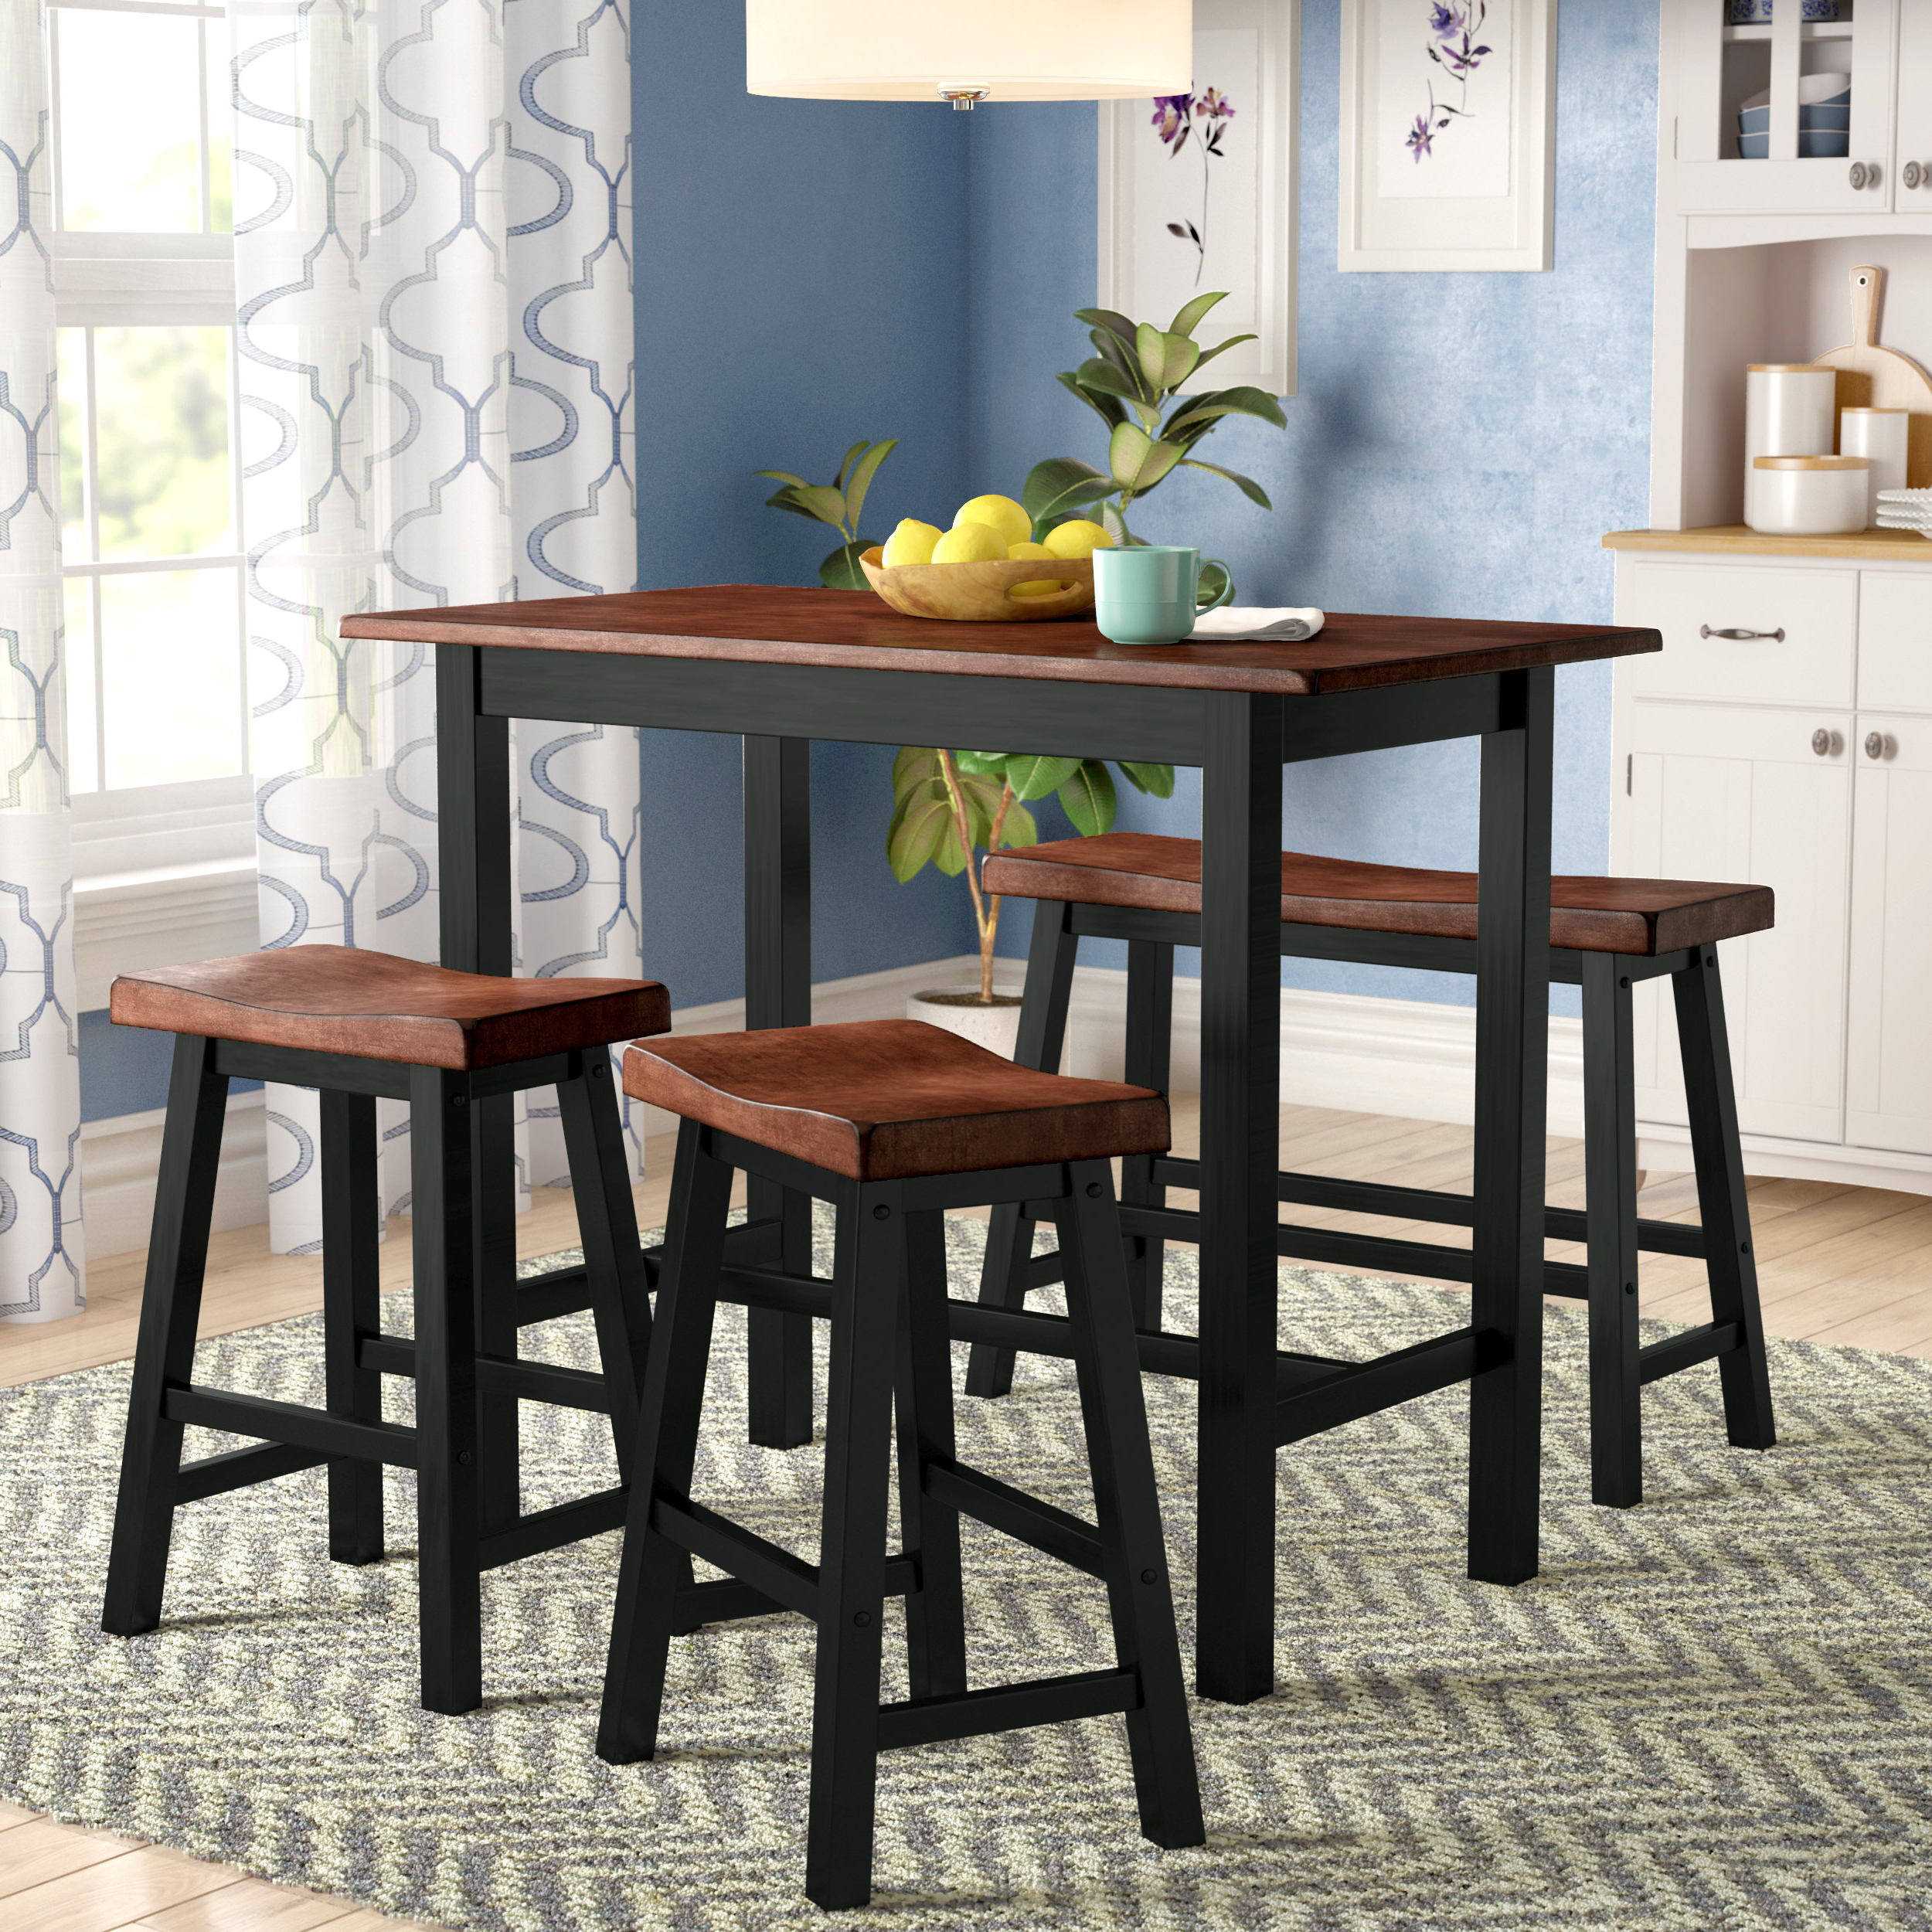 Widely Used Red Barrel Studio Opal 4 Piece Counter Height Dining Set & Reviews Inside Kerley 4 Piece Dining Sets (View 7 of 25)